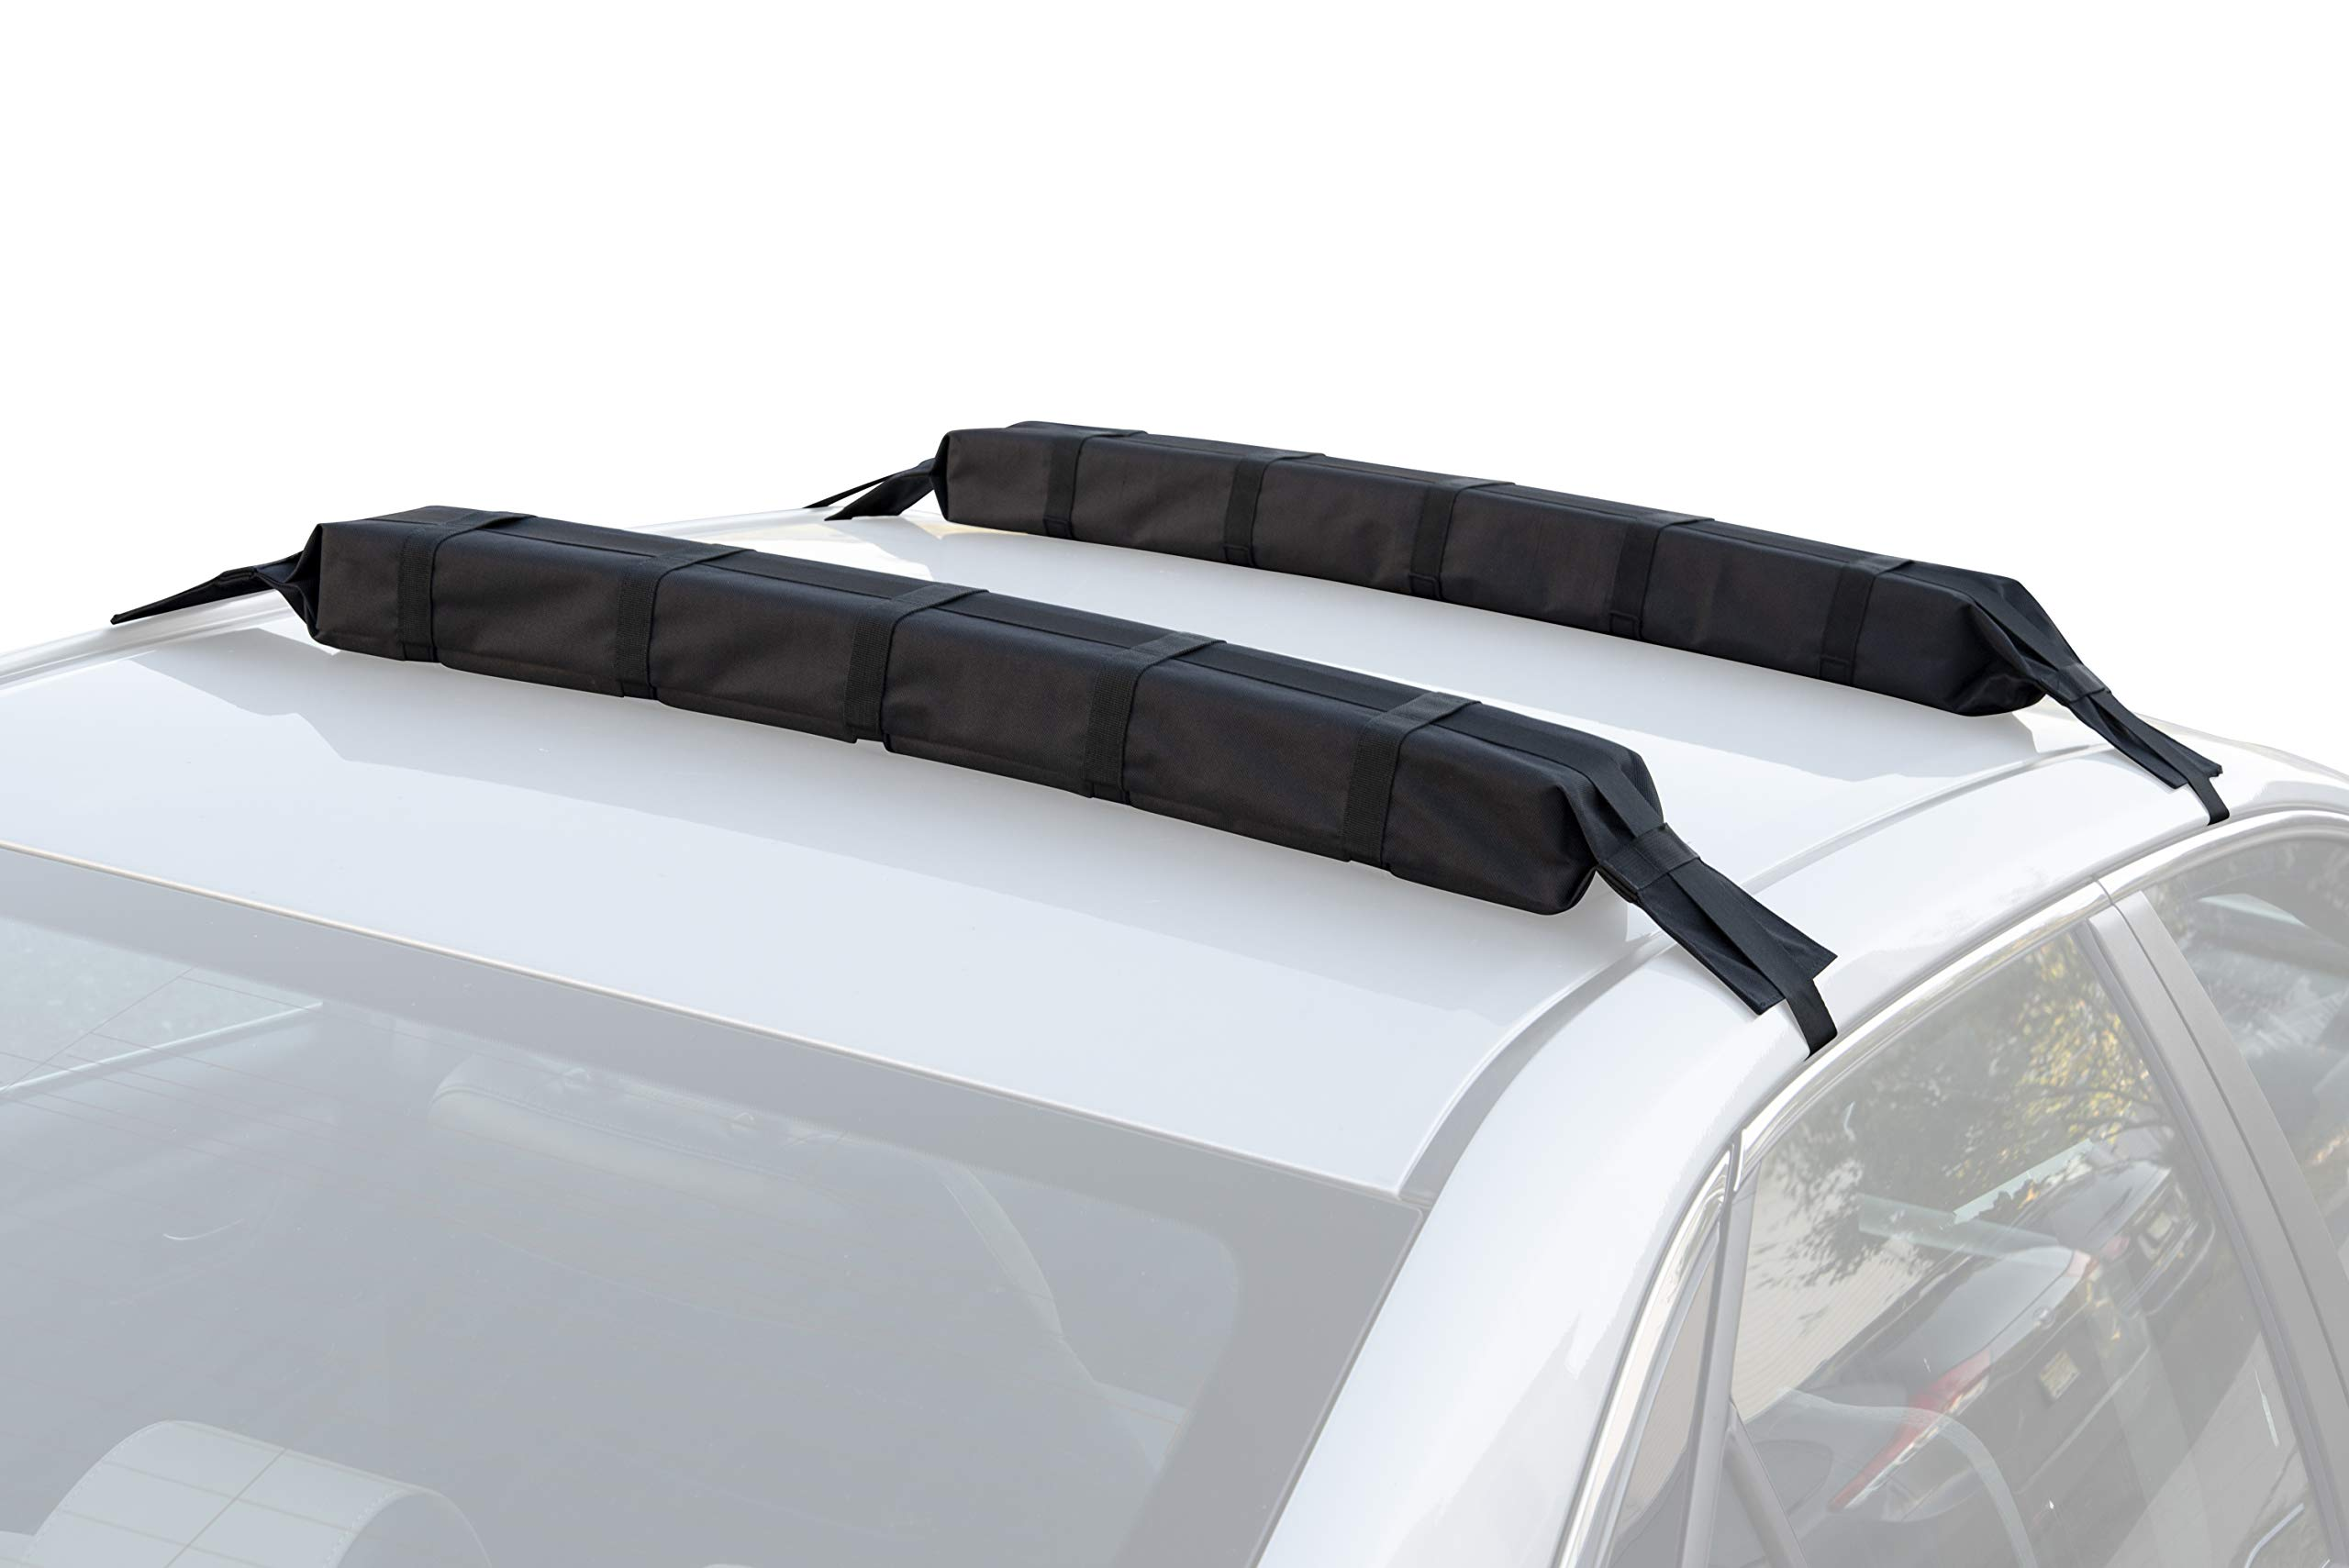 Universal Car Soft Roof Rack Pad & Luggage Carrier Anti-vibration System – Includes 2 Waterproof Tie Down Straps + Storage Bag